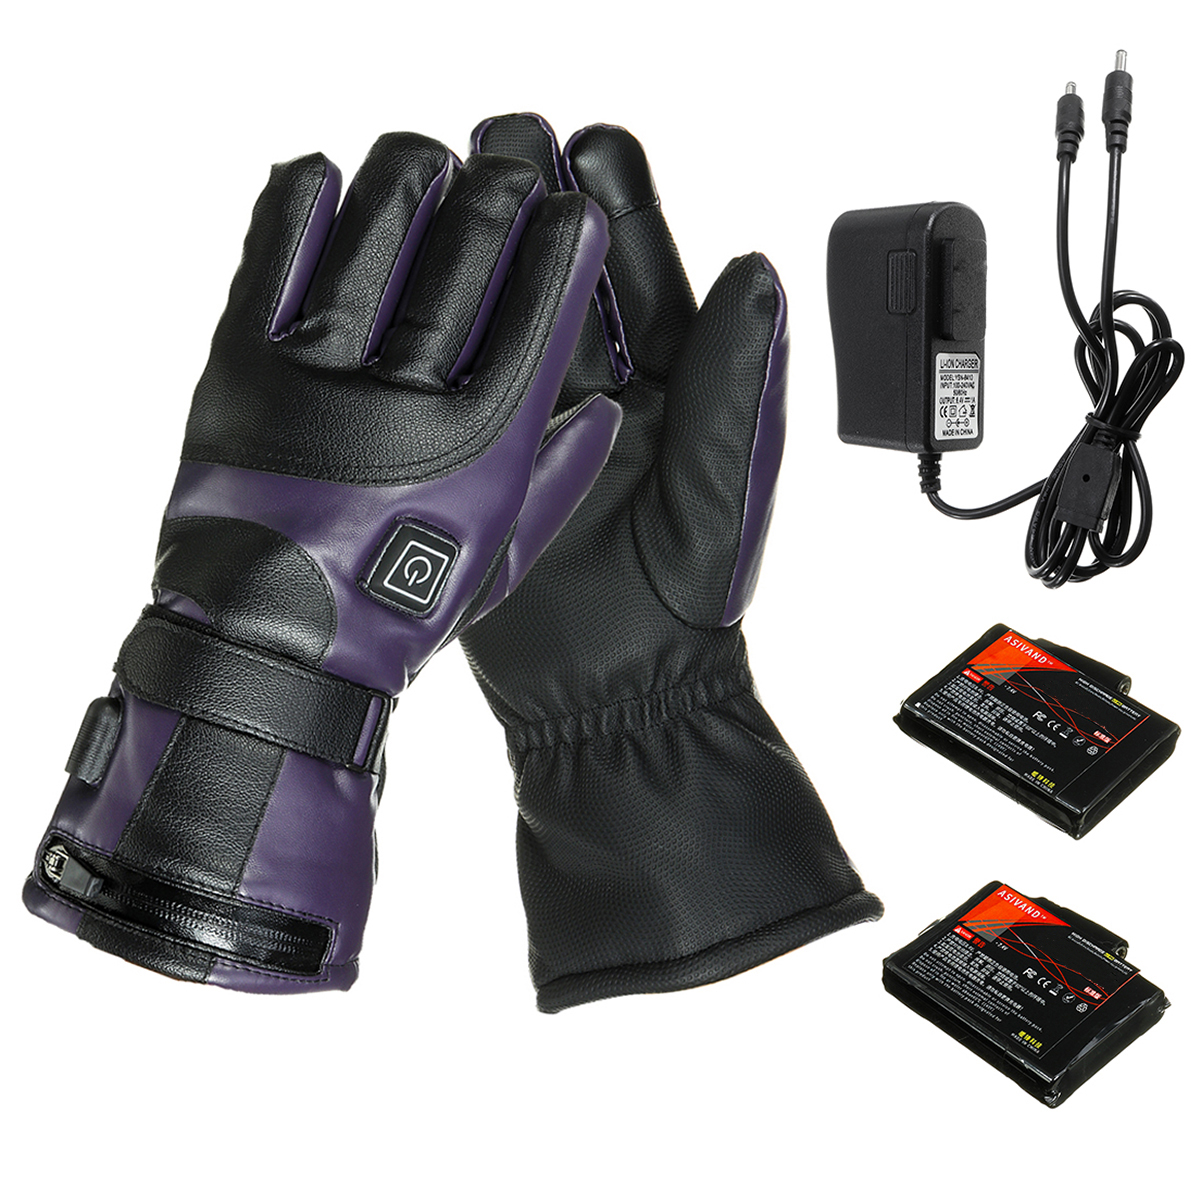 Electric Heated Gloves Rechargeable Touch Screen Heating Winter Warm Motorcycle Gloves 2000/2800/4000mAh